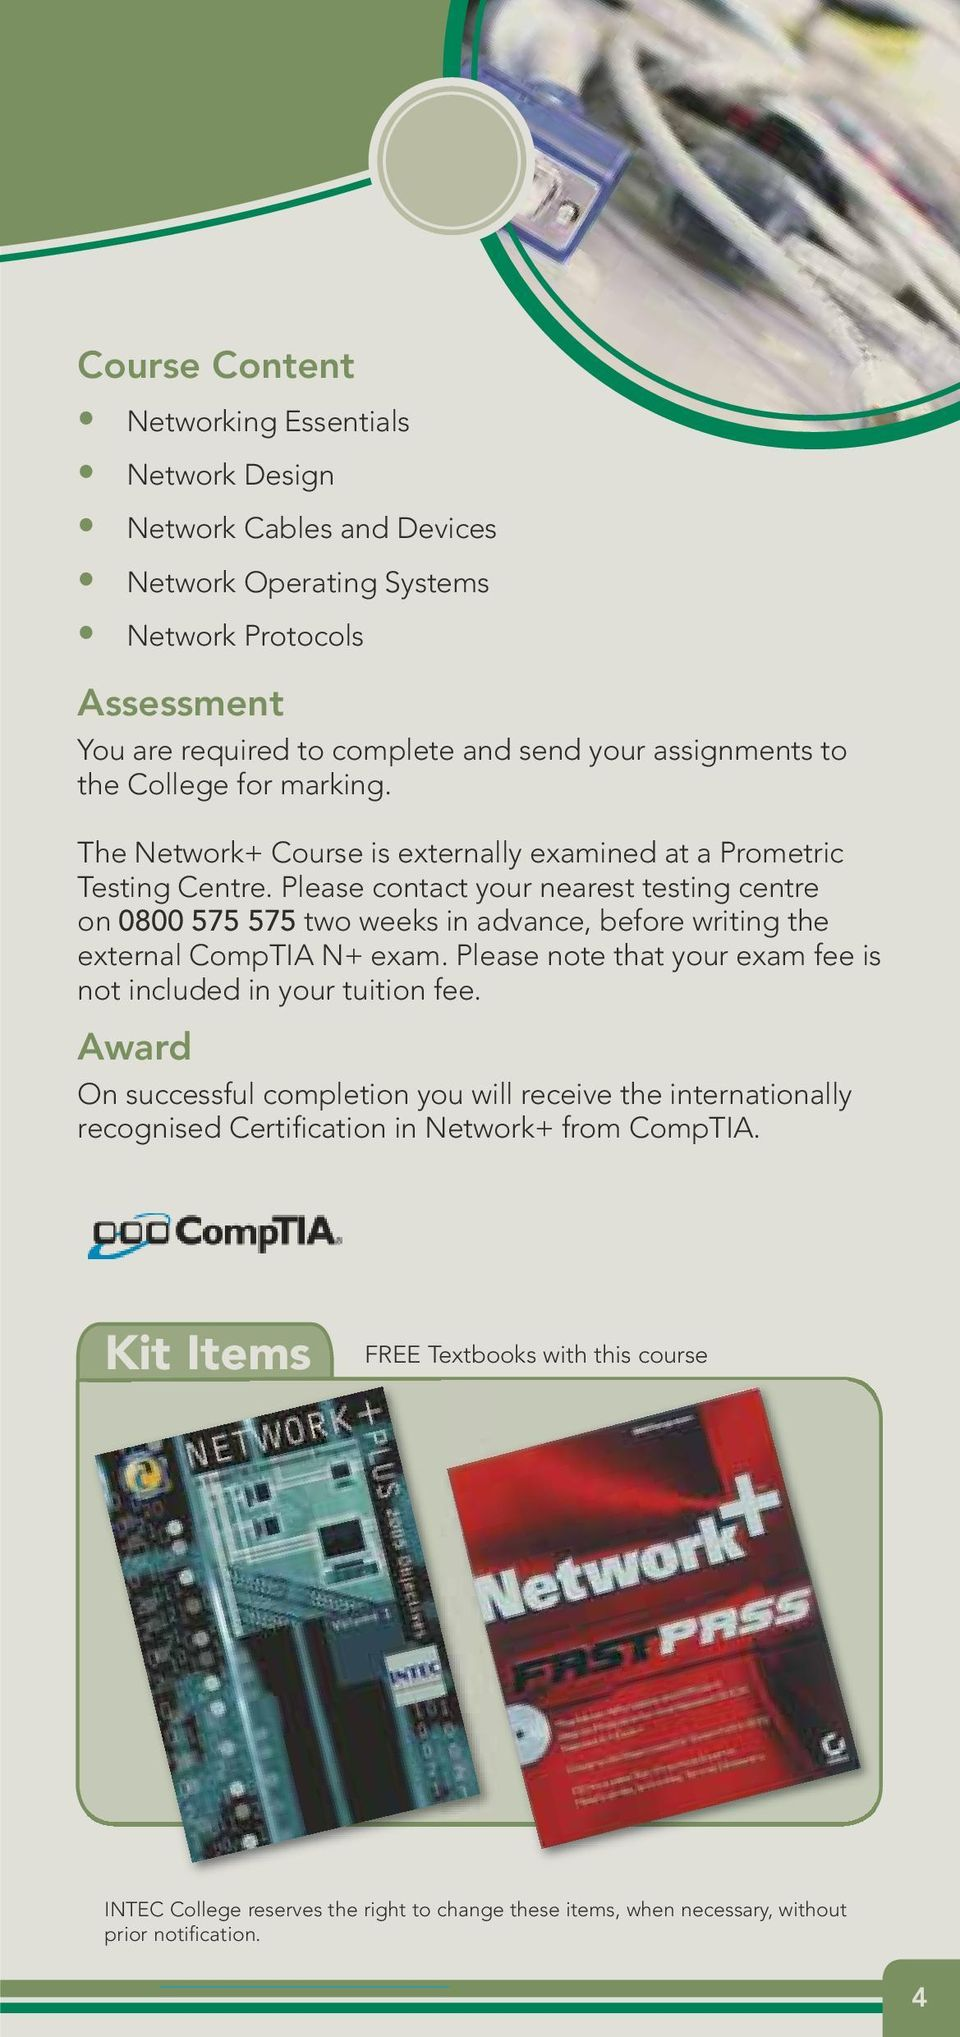 Please contact your nearest testing centre on 0800 575 575 two weeks in advance, before writing the external CompTIA N+ exam.